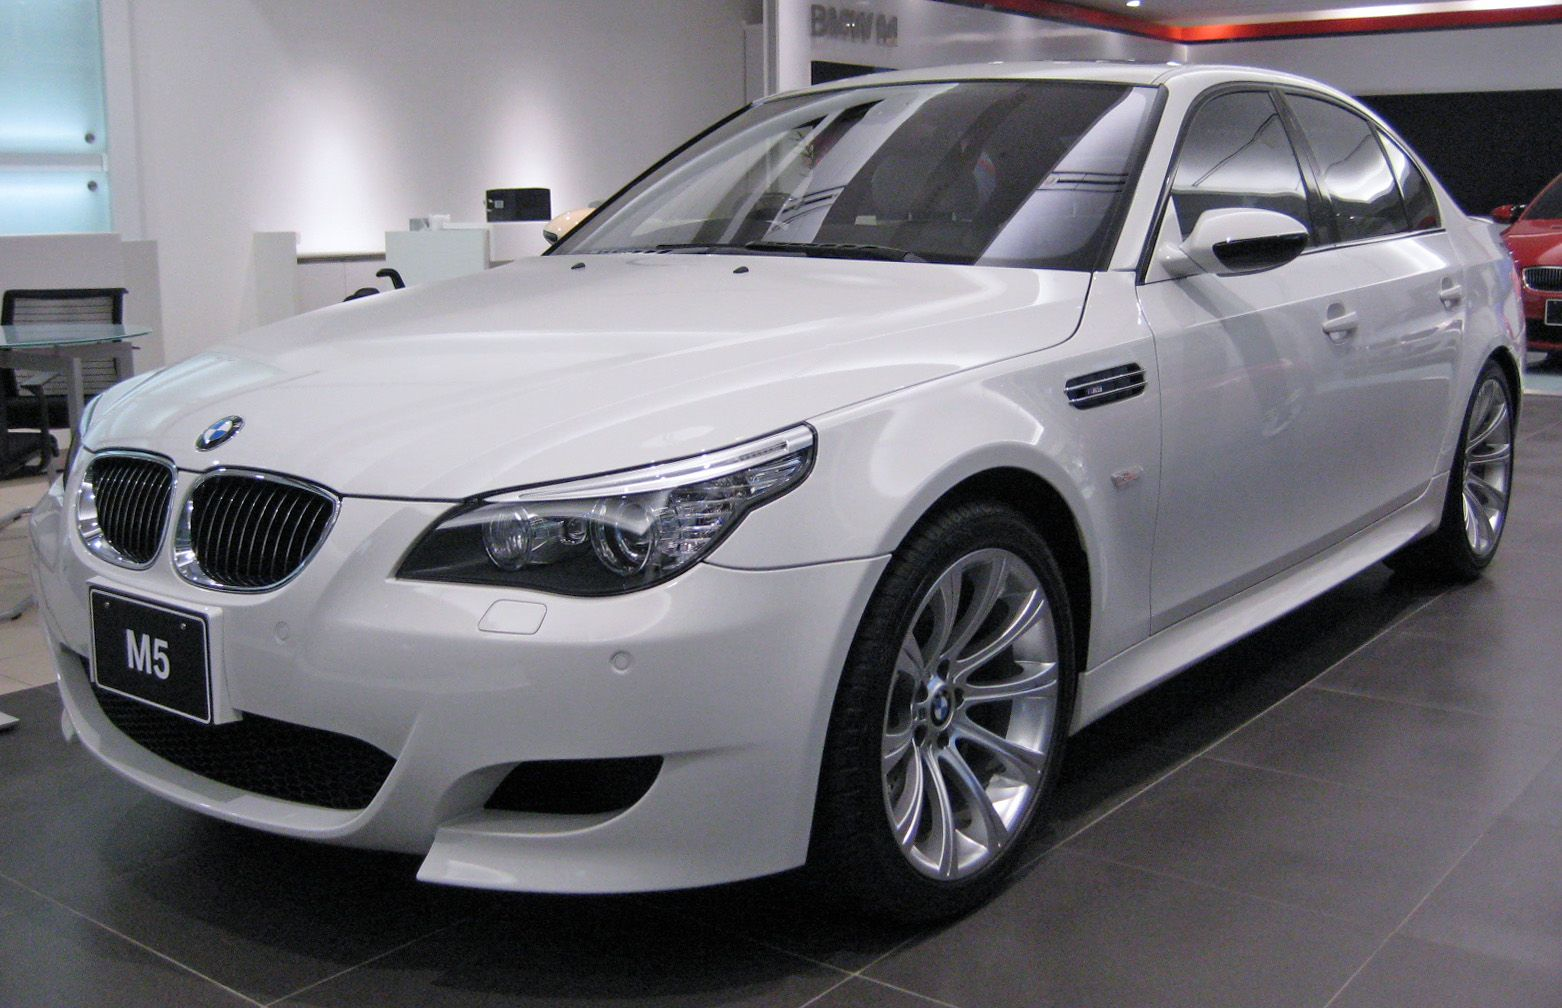 Bmw cars bmw e60 series car specifications